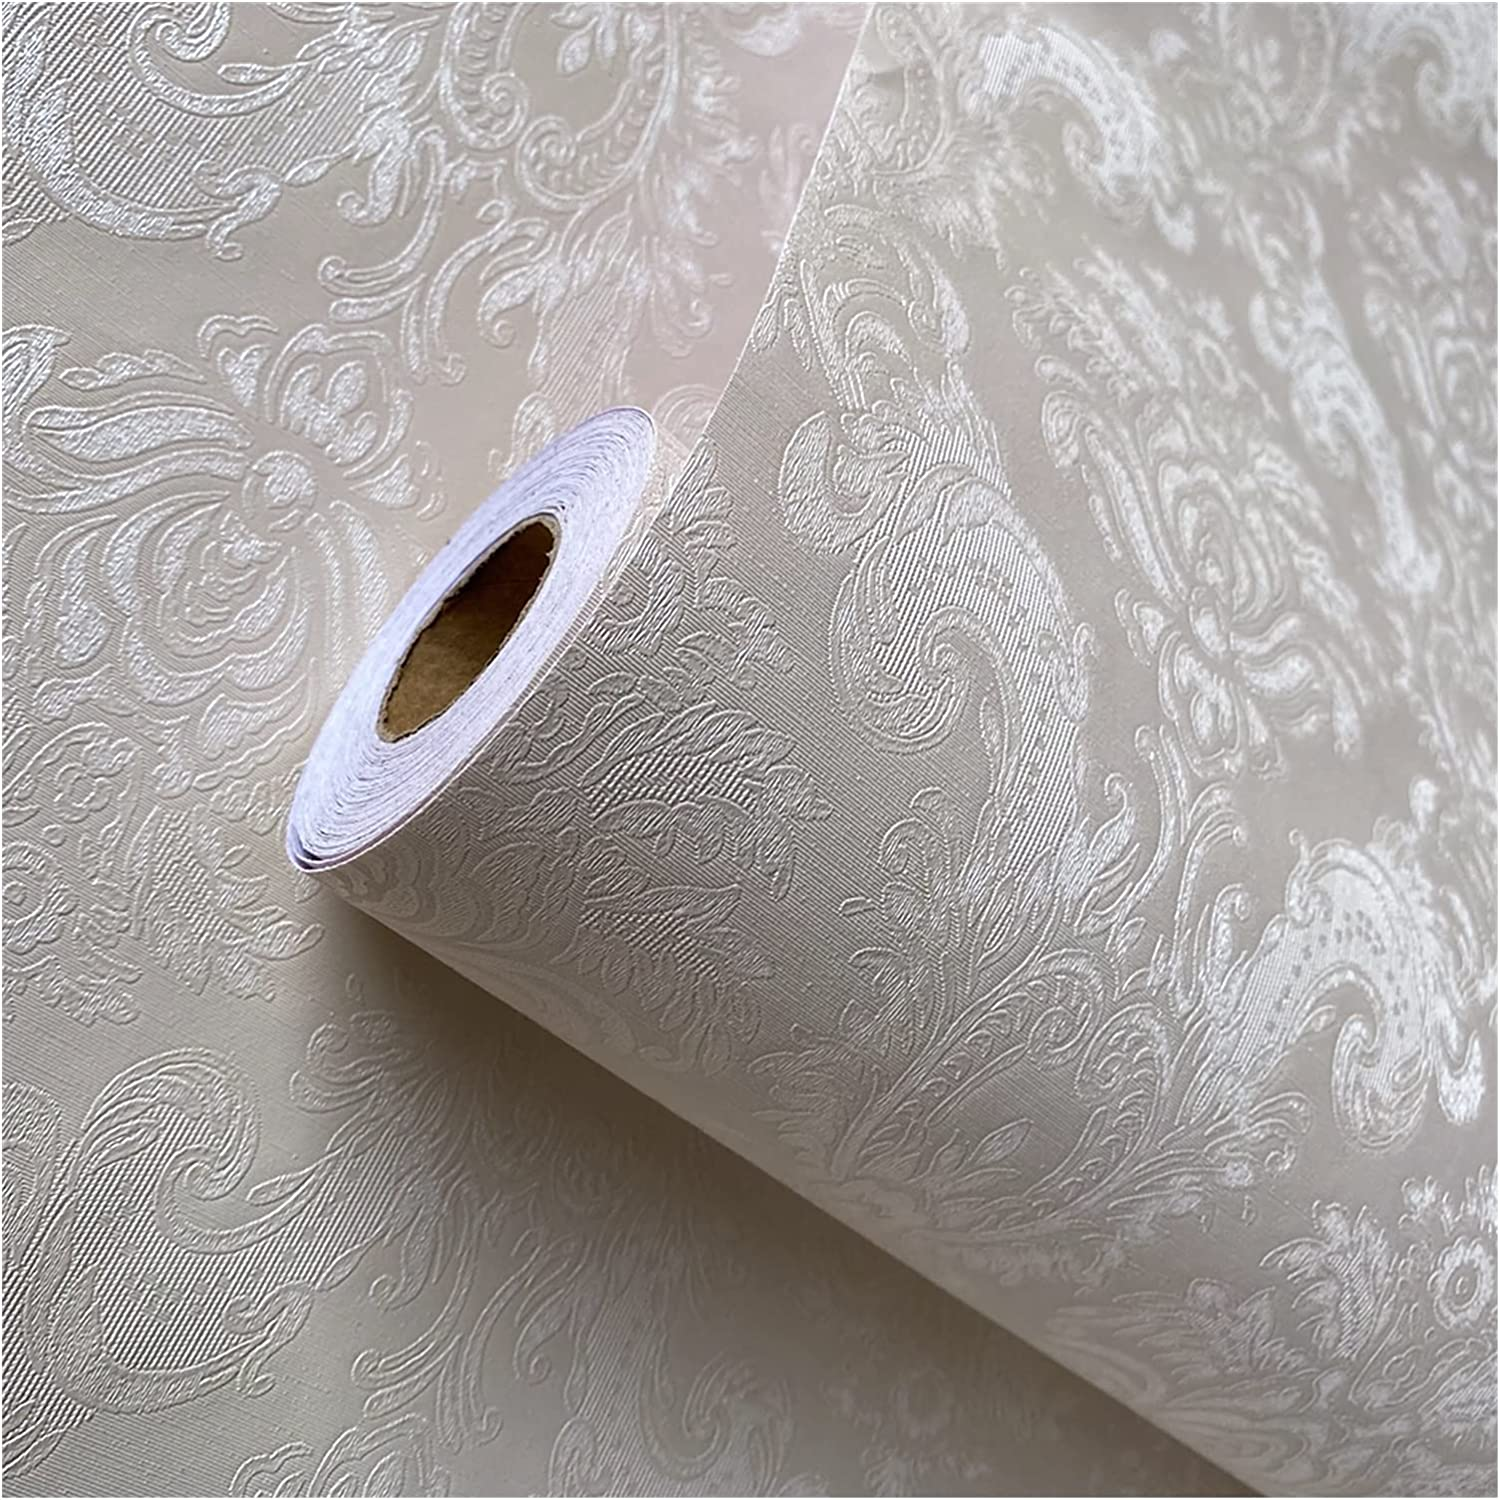 ZXCVB Peel and Stick Material Genuine Waterproof Wallpaper Sale special price PVC